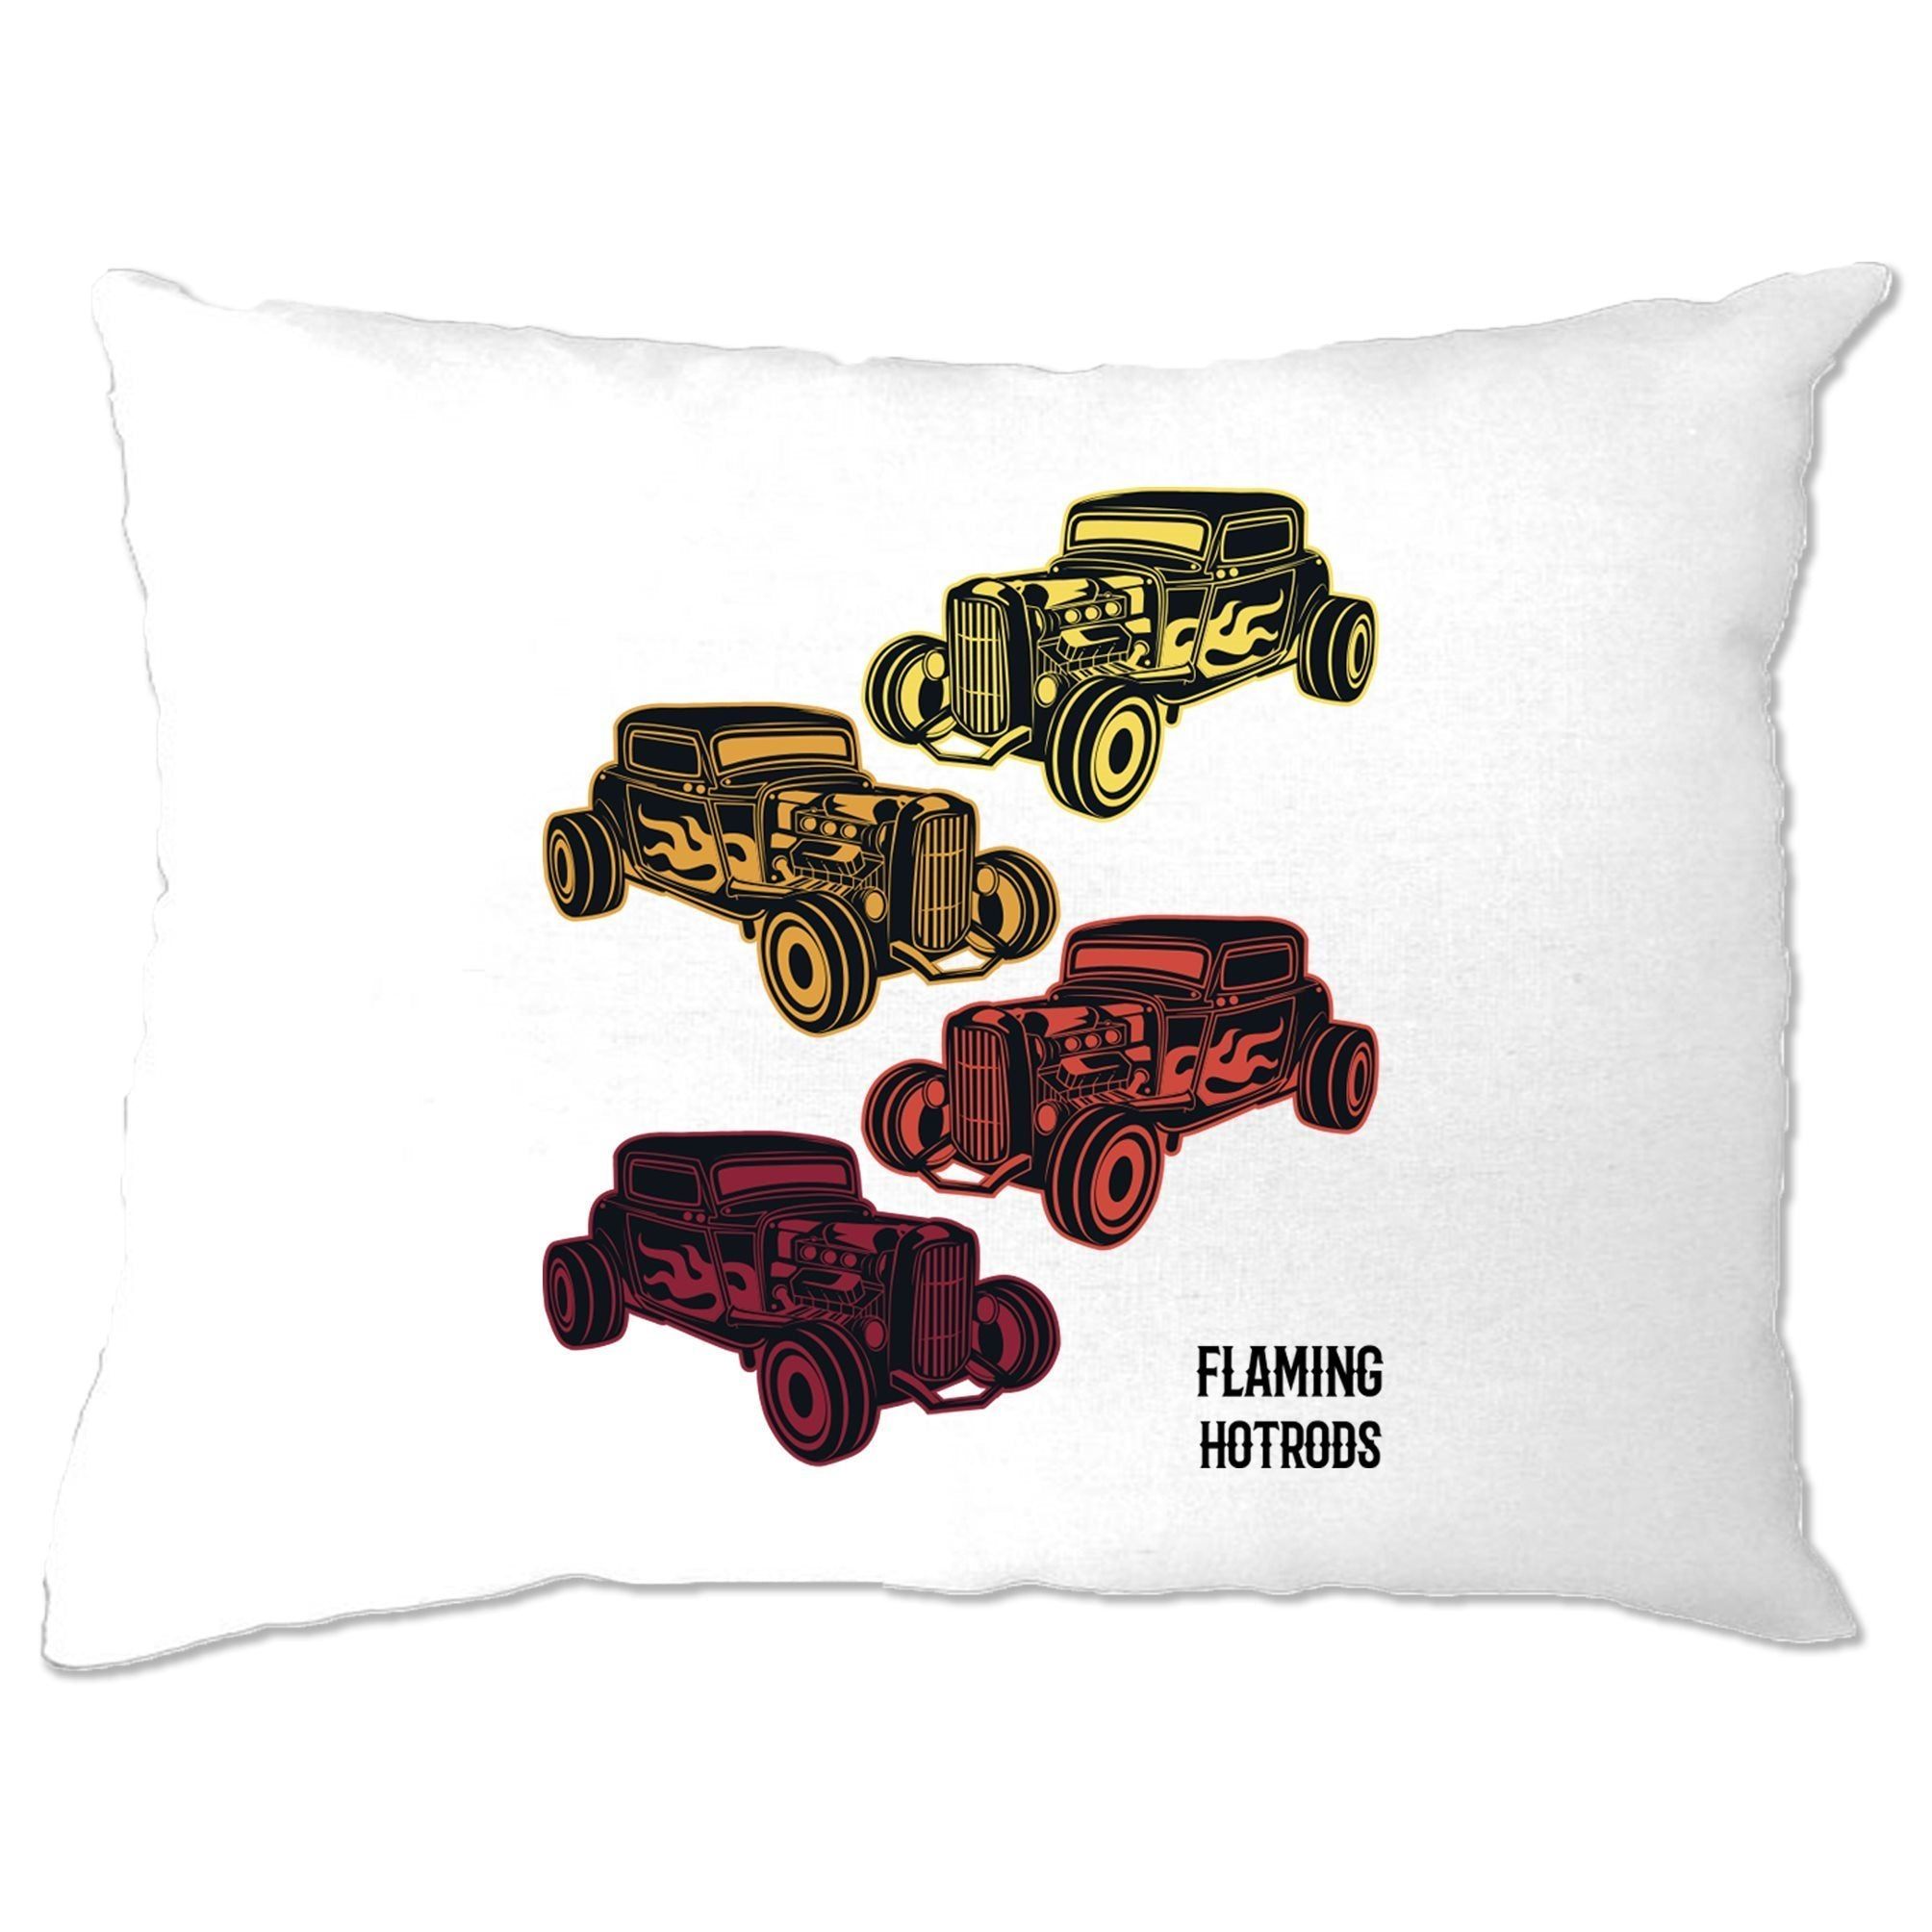 Vintage Pillow Case Flaming Hot Rods Cars